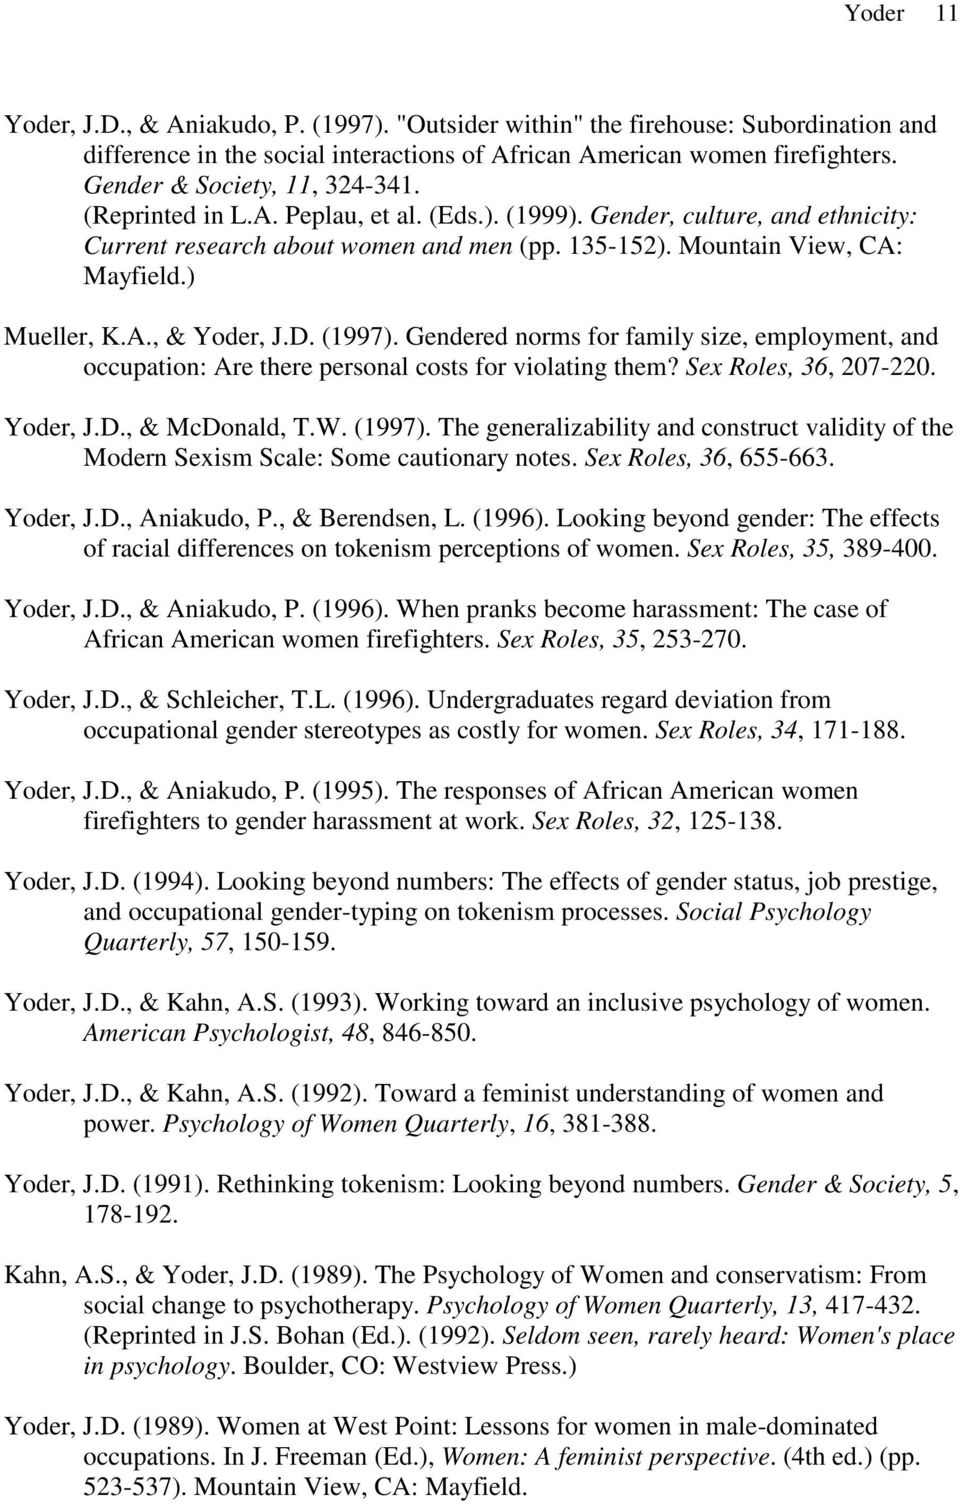 ) Mueller, K.A., & Yoder, J.D. (1997). Gendered norms for family size, employment, and occupation: Are there personal costs for violating them? Sex Roles, 36, 207-220. Yoder, J.D., & McDonald, T.W.